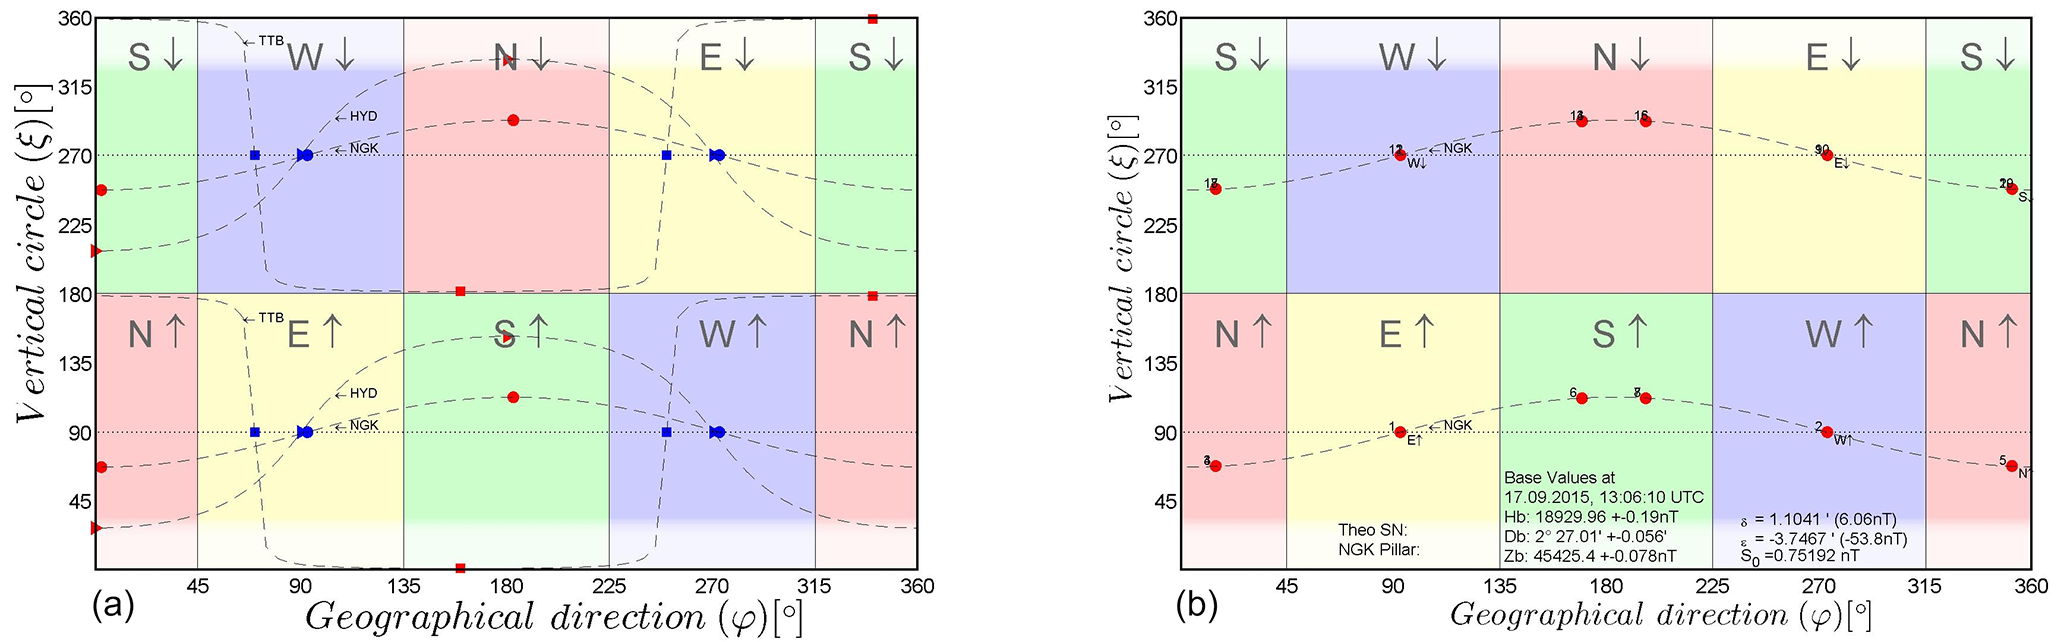 GI - Numerical evaluation of magnetic absolute measurements